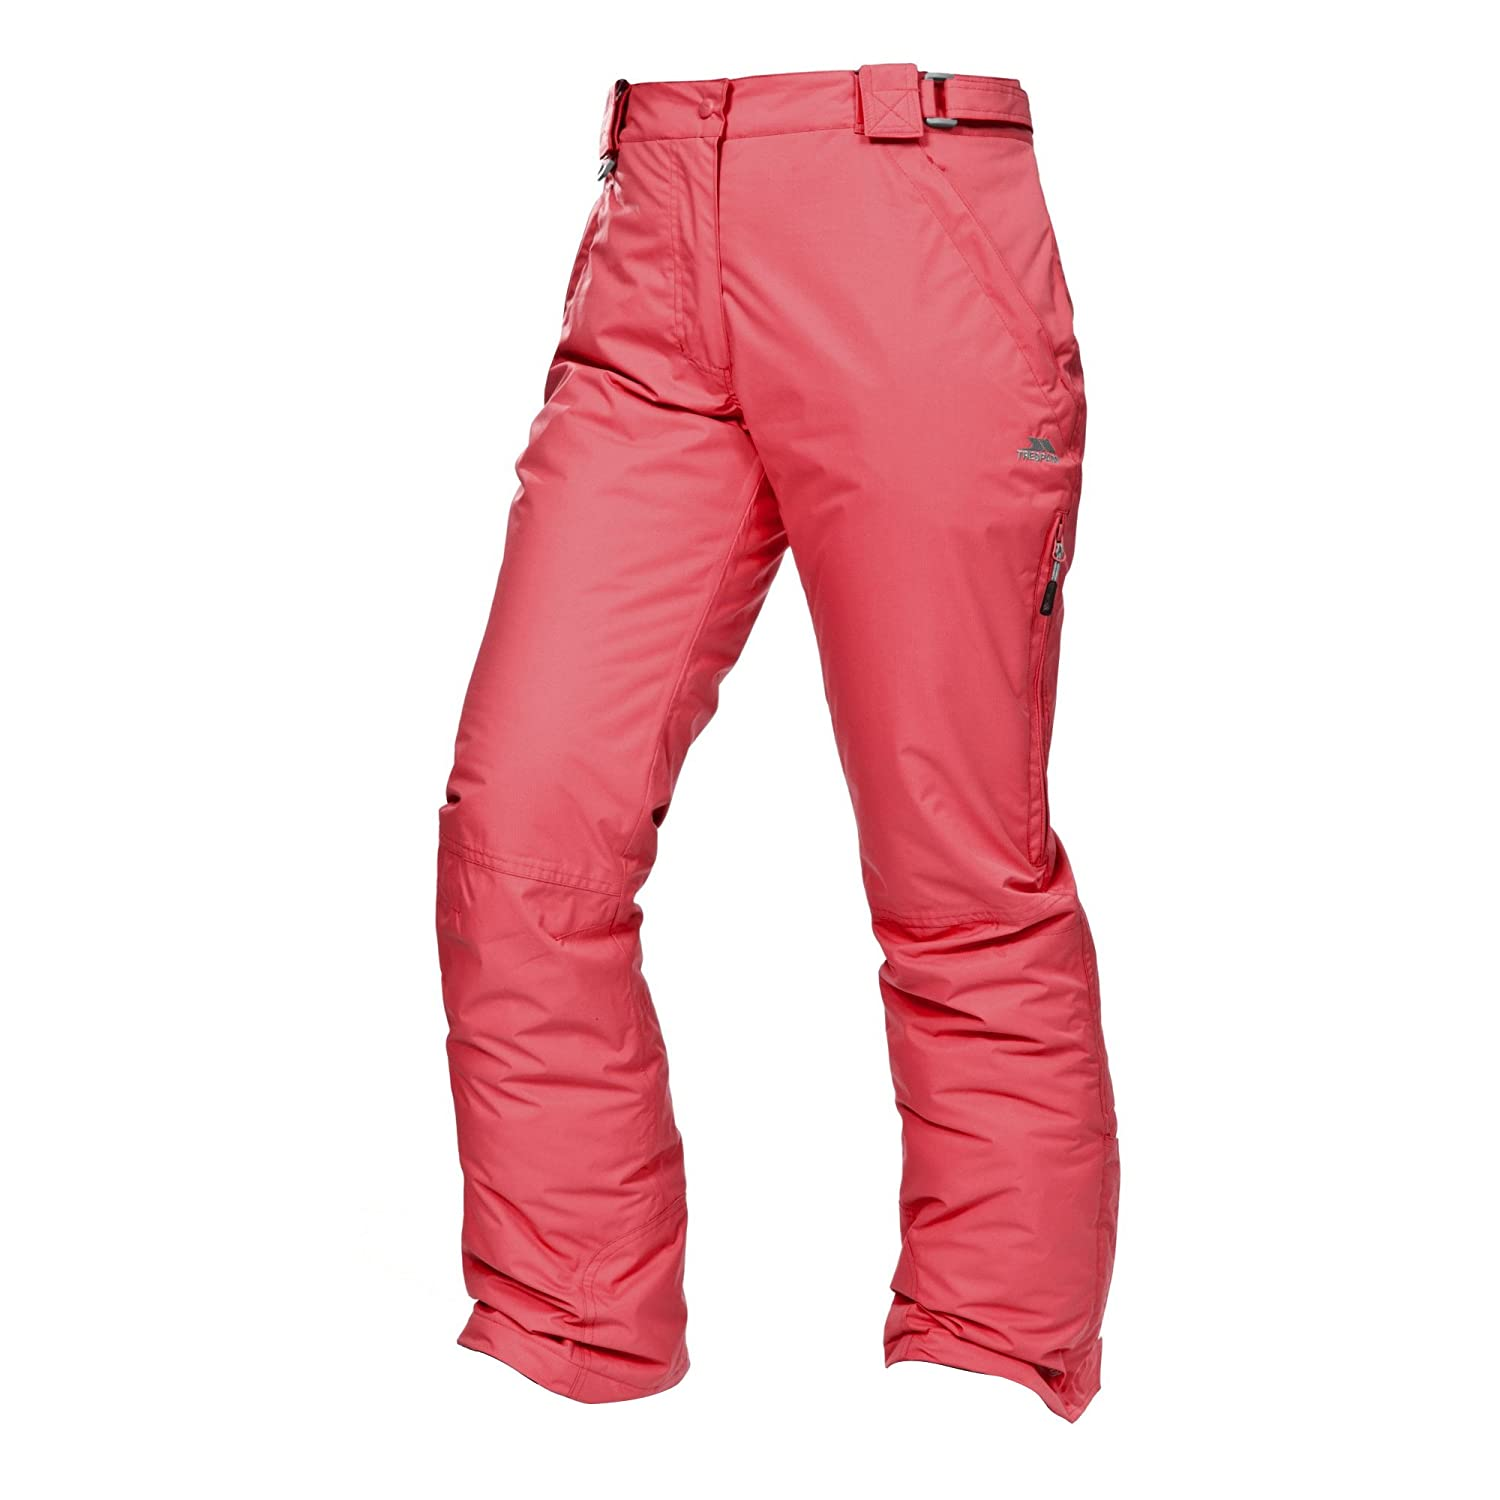 Trespass Womens/Ladies Lohan Waterproof Ski Trousers